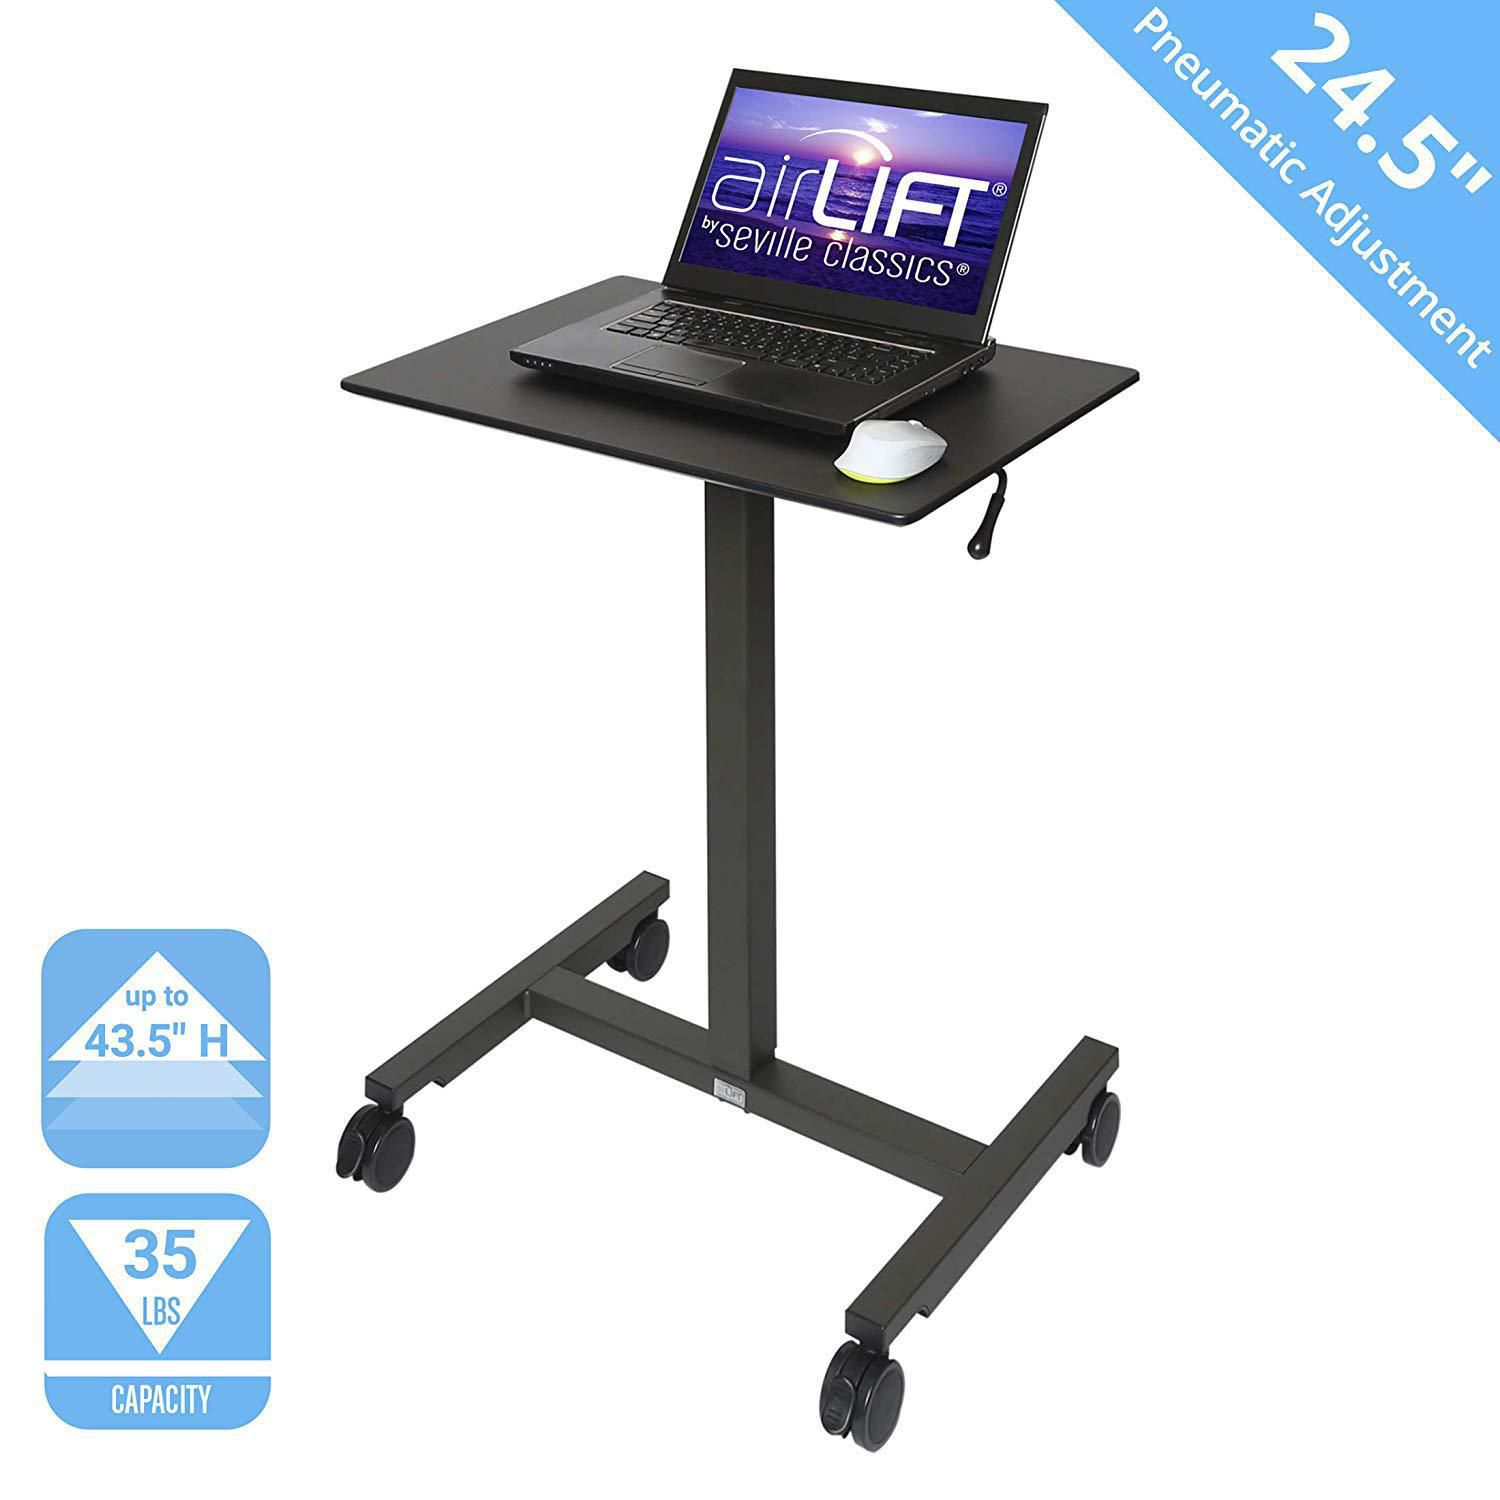 24 Seville Classics Airlift Pneumatic Laptop Computer Mobile Desk Cart Height Adjustable From 29 3 To 43 5 H Maple Office Furniture Accessories Desks Workstations